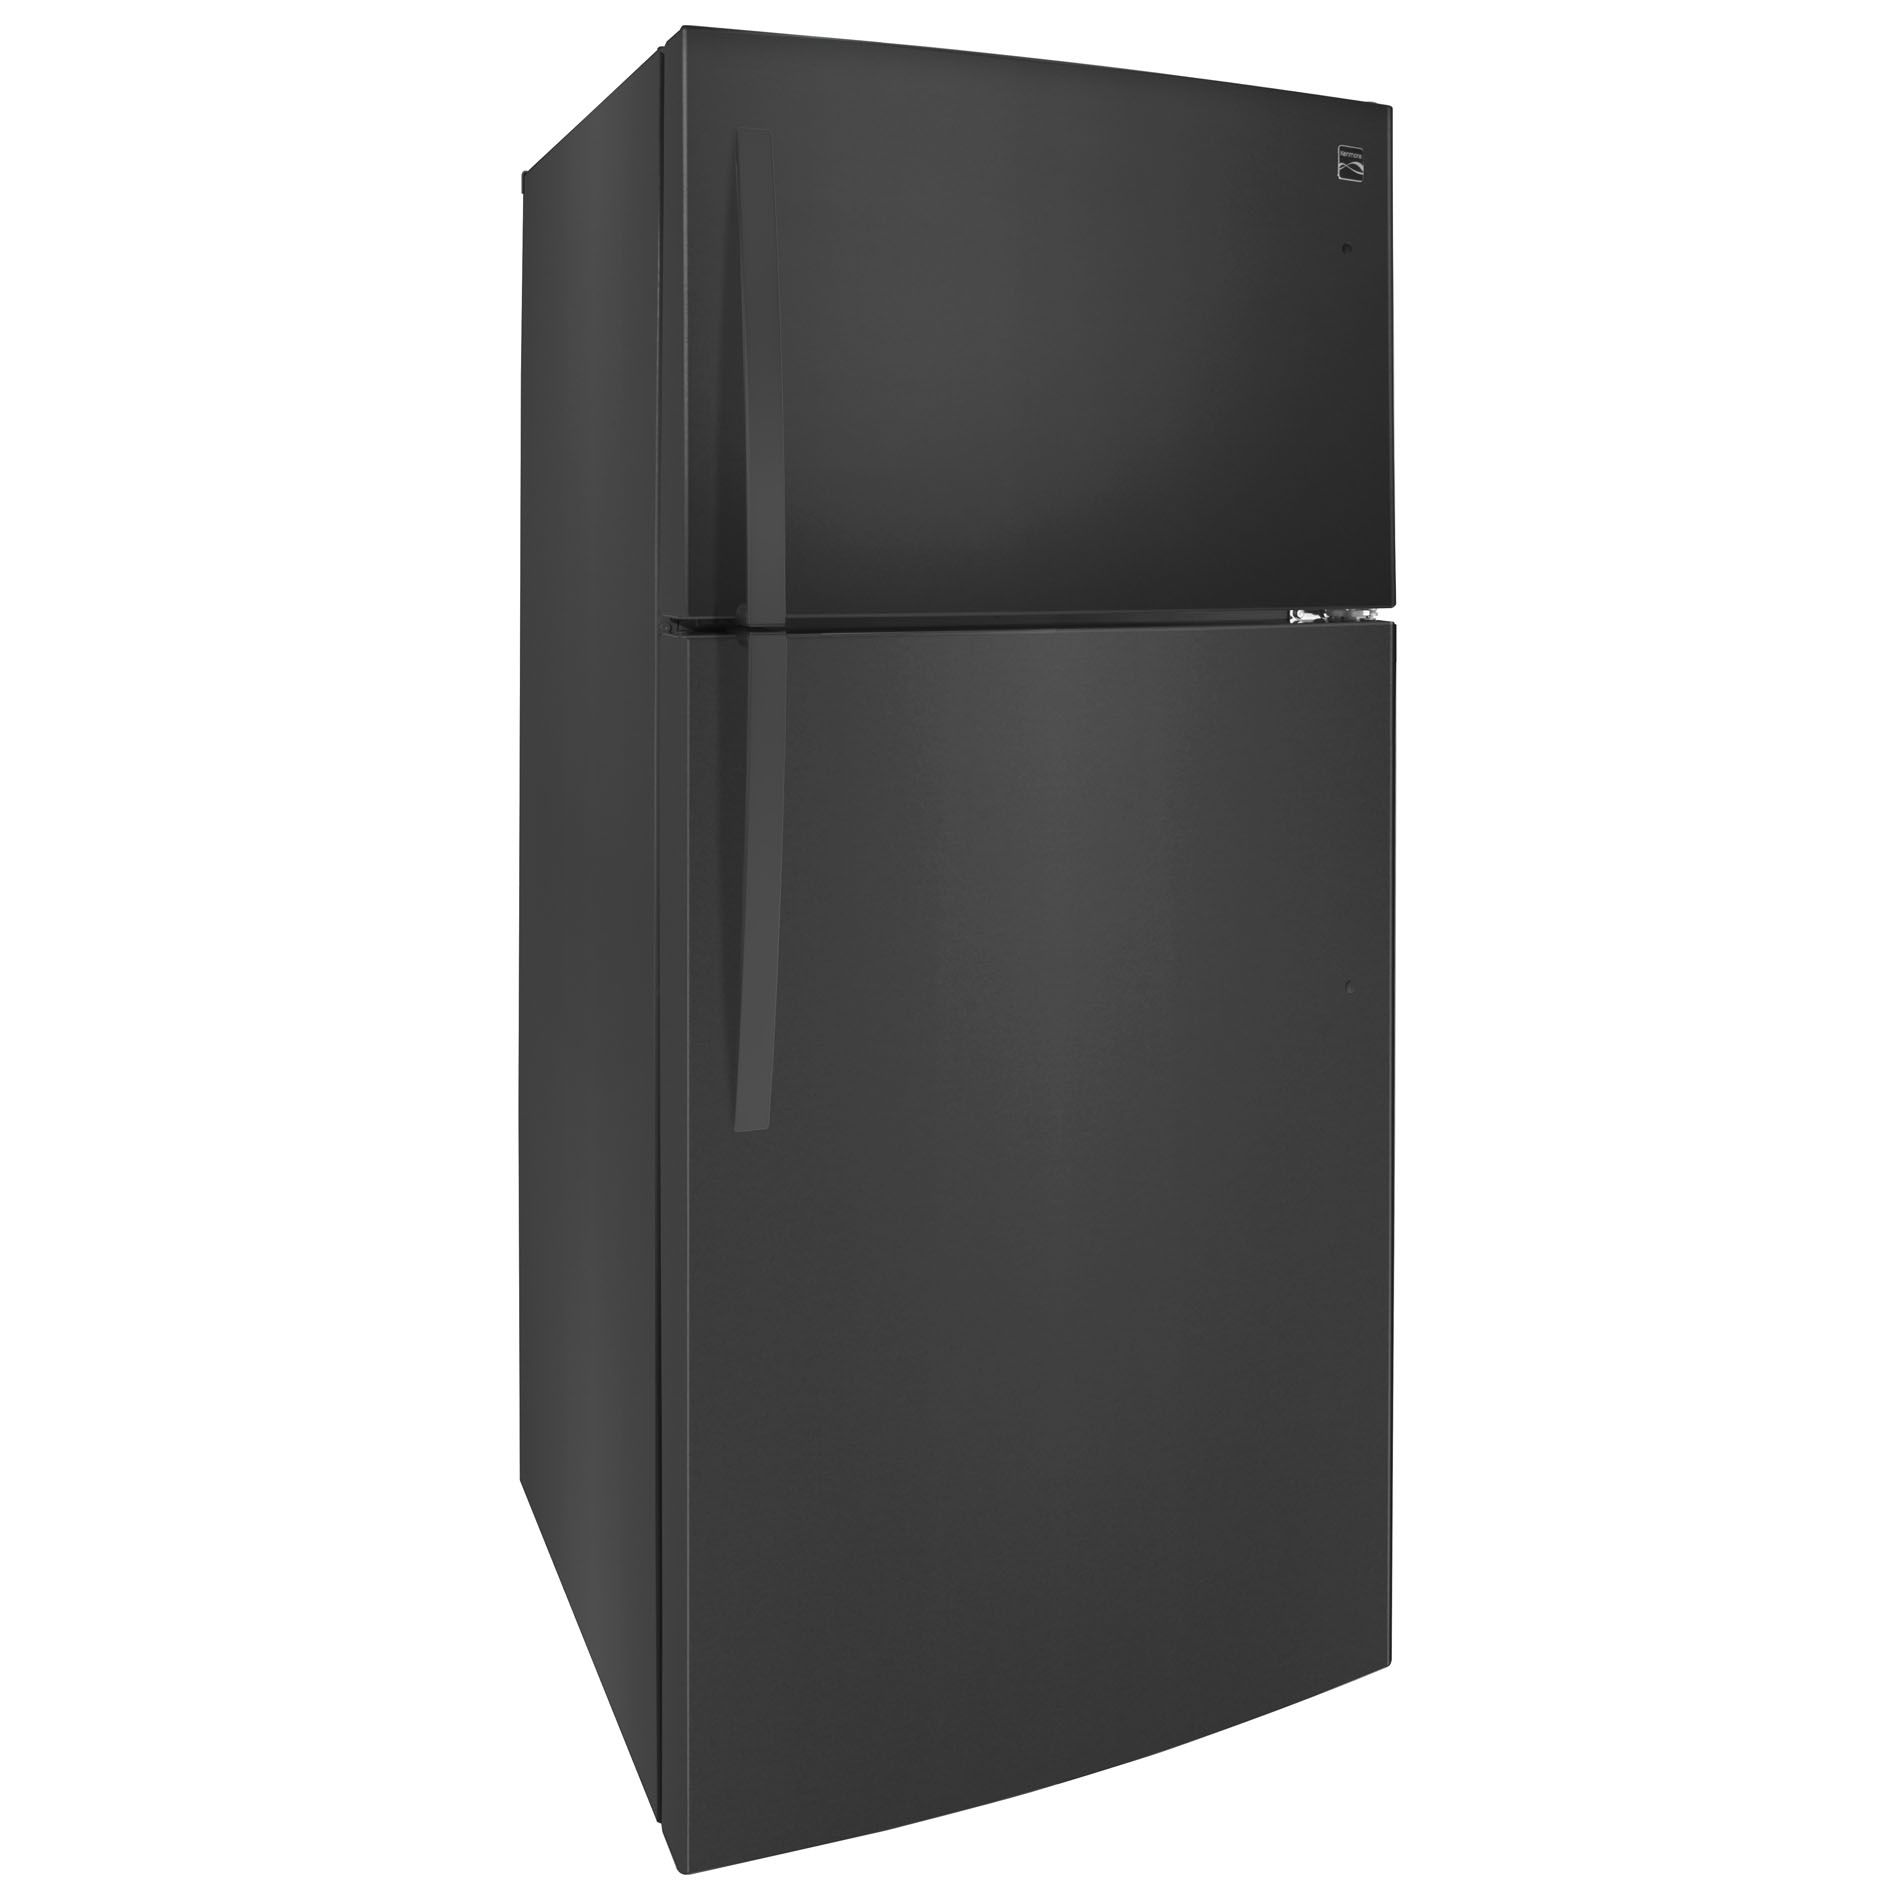 "Kenmore 79439 23.8 cu. ft. 33"" Top-Freezer Refrigerator w/ Internal Water Dispenser - Black"